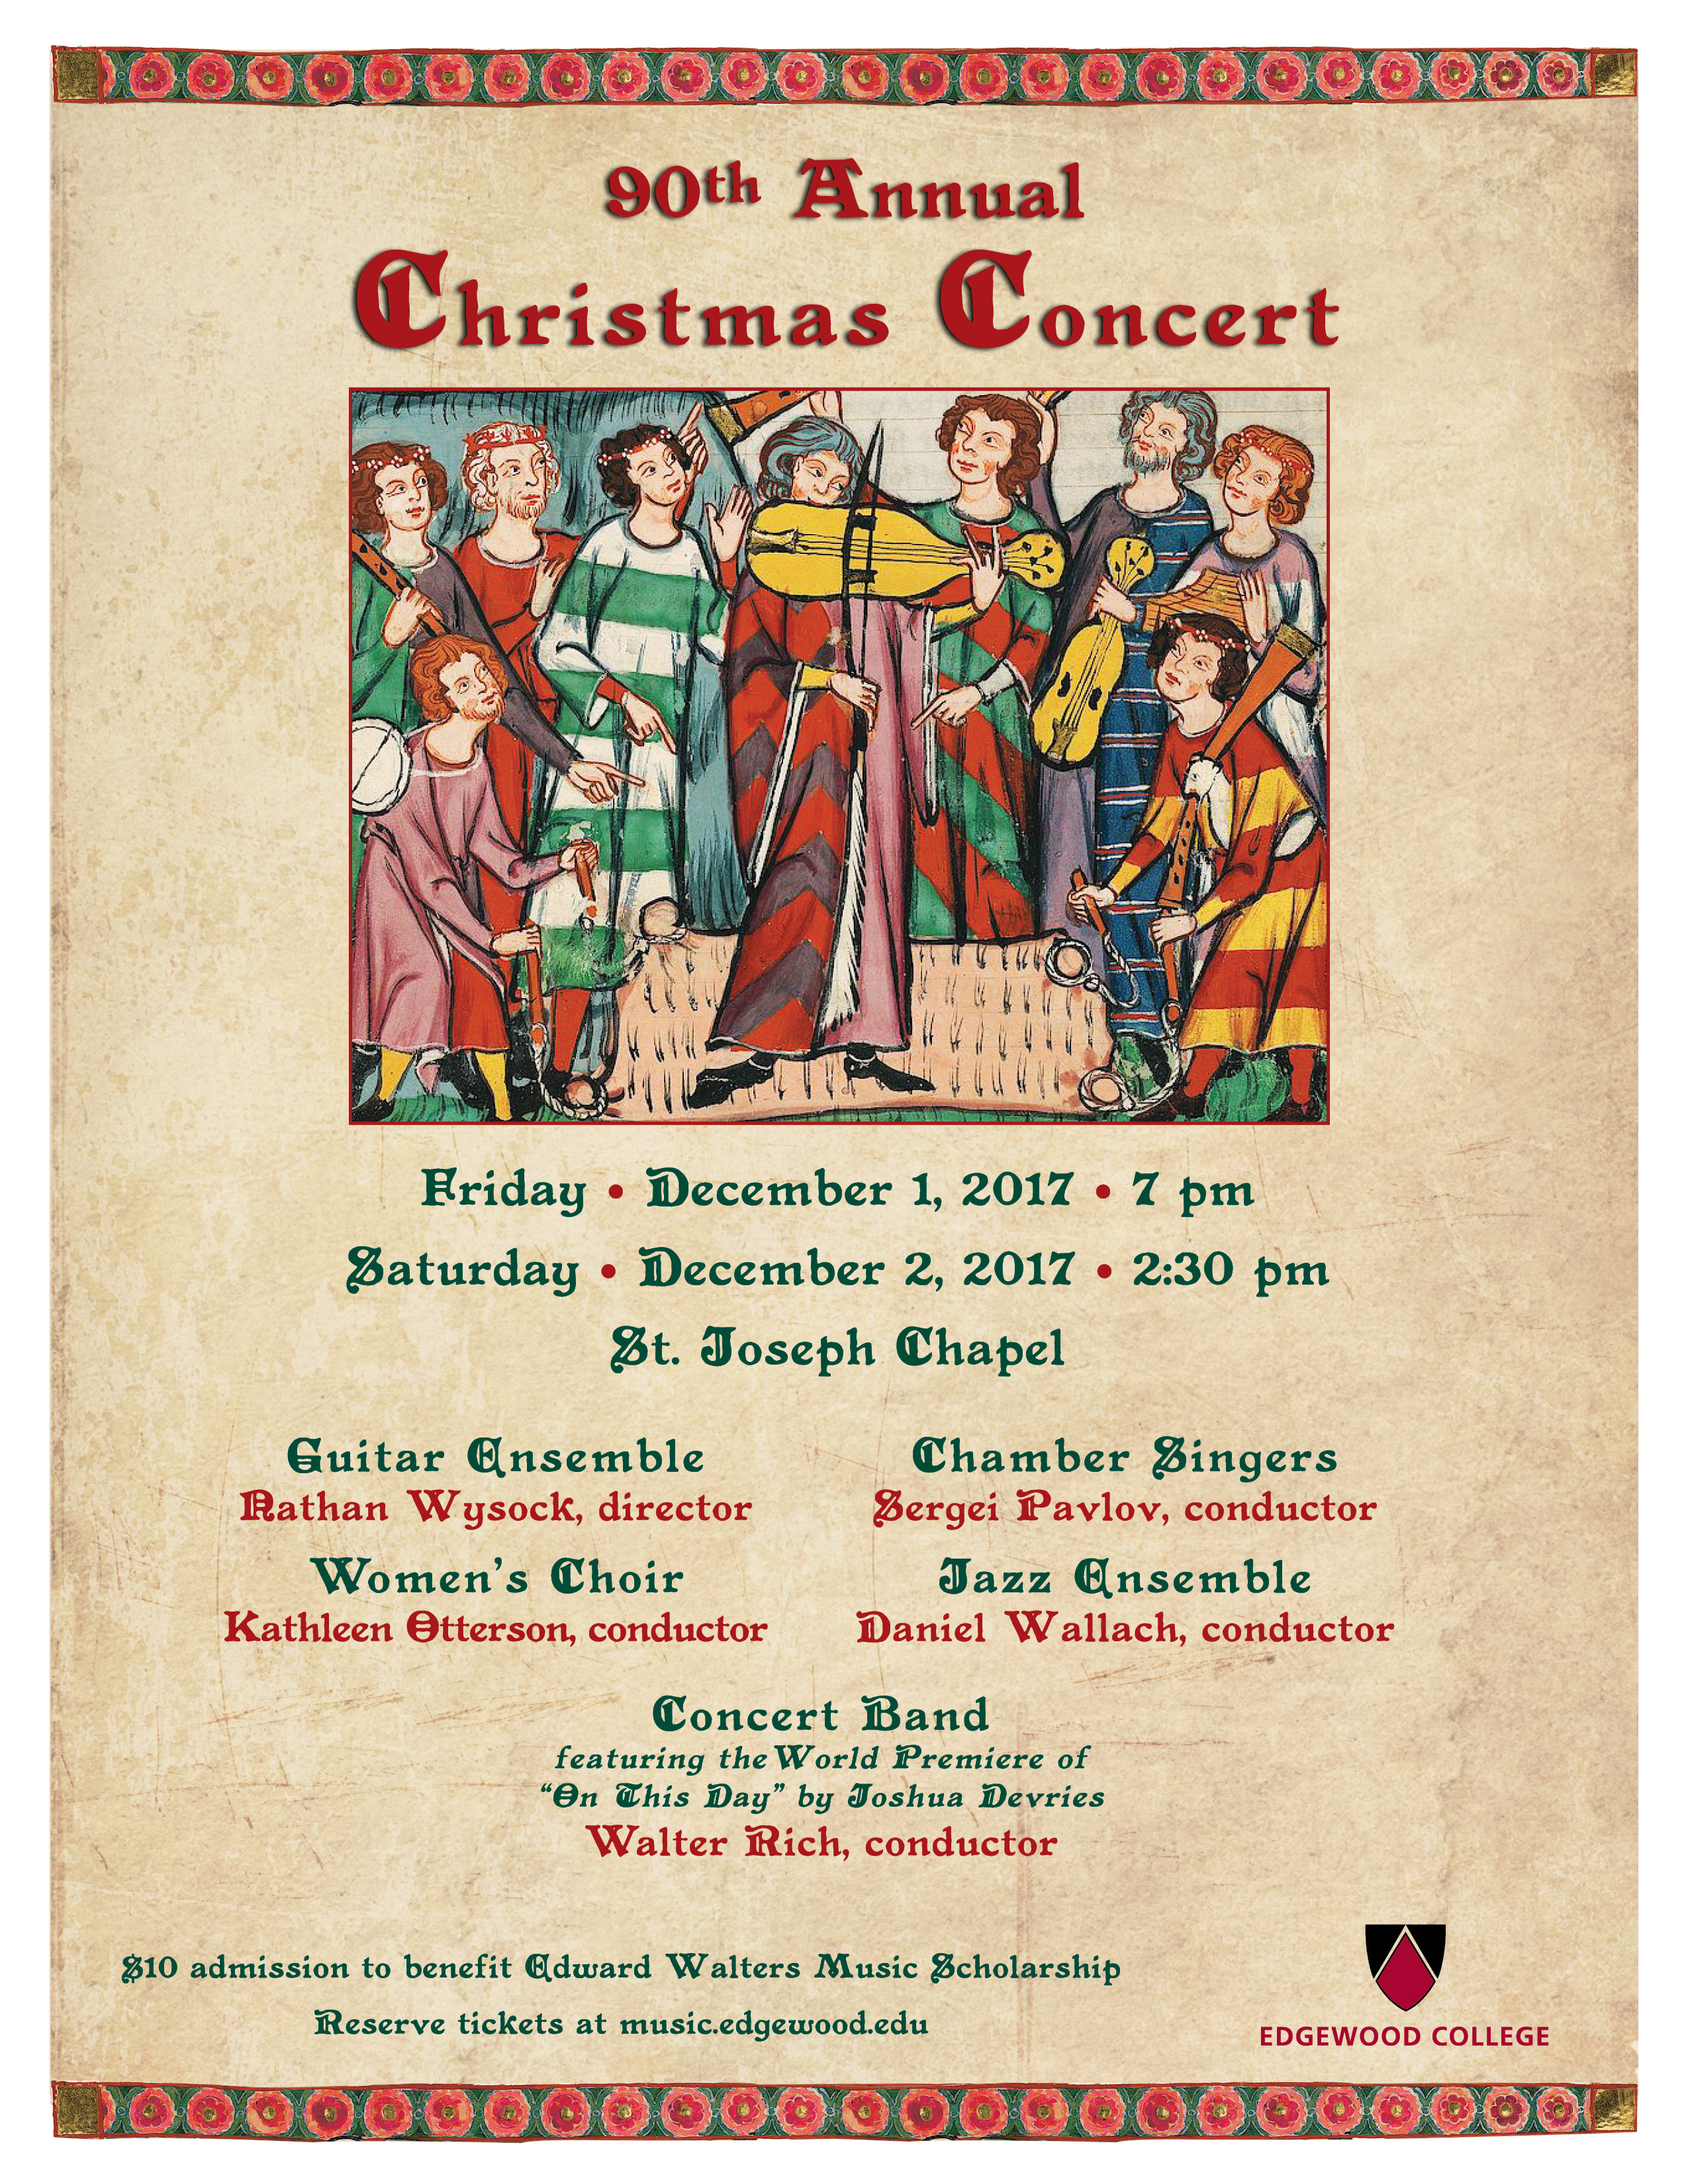 90th Annual Christmas Concert Poster